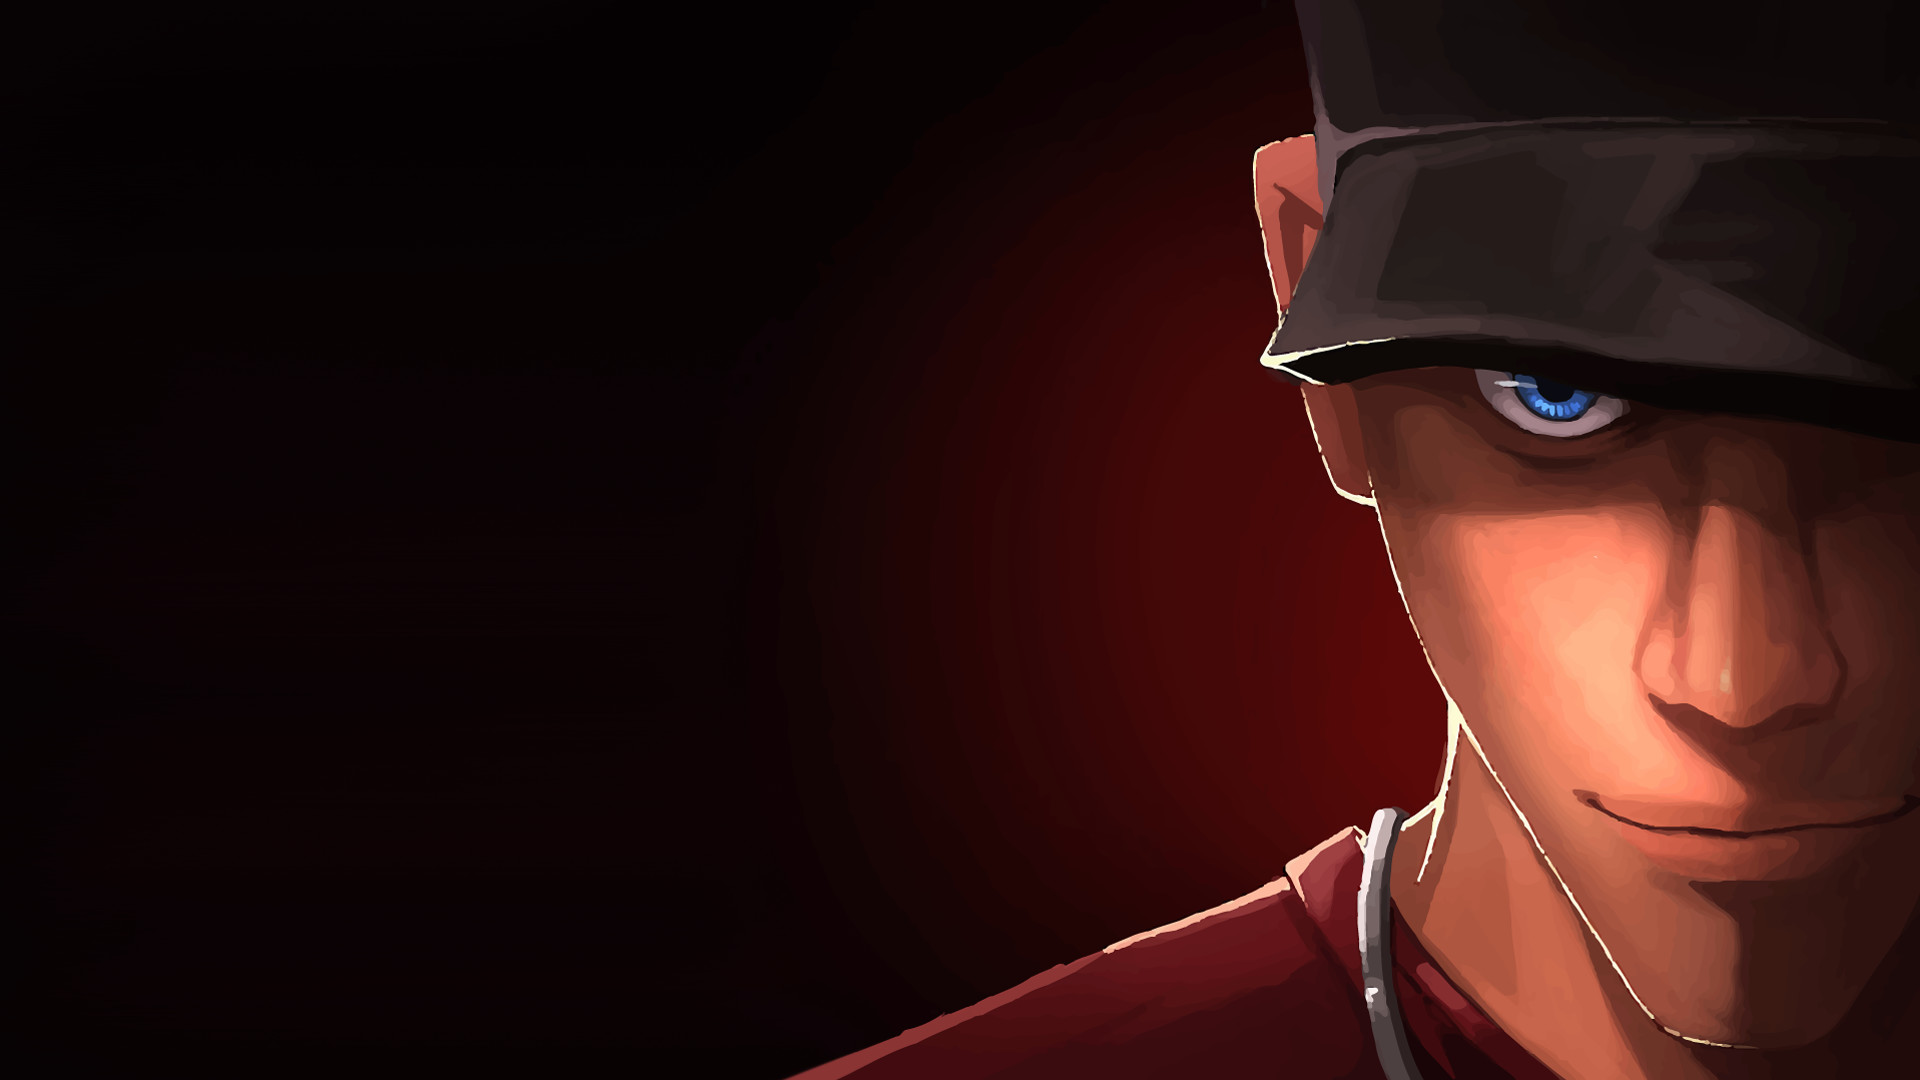 1920x1080 Tf2 Scout Wallpapers - Wallpaper Cave